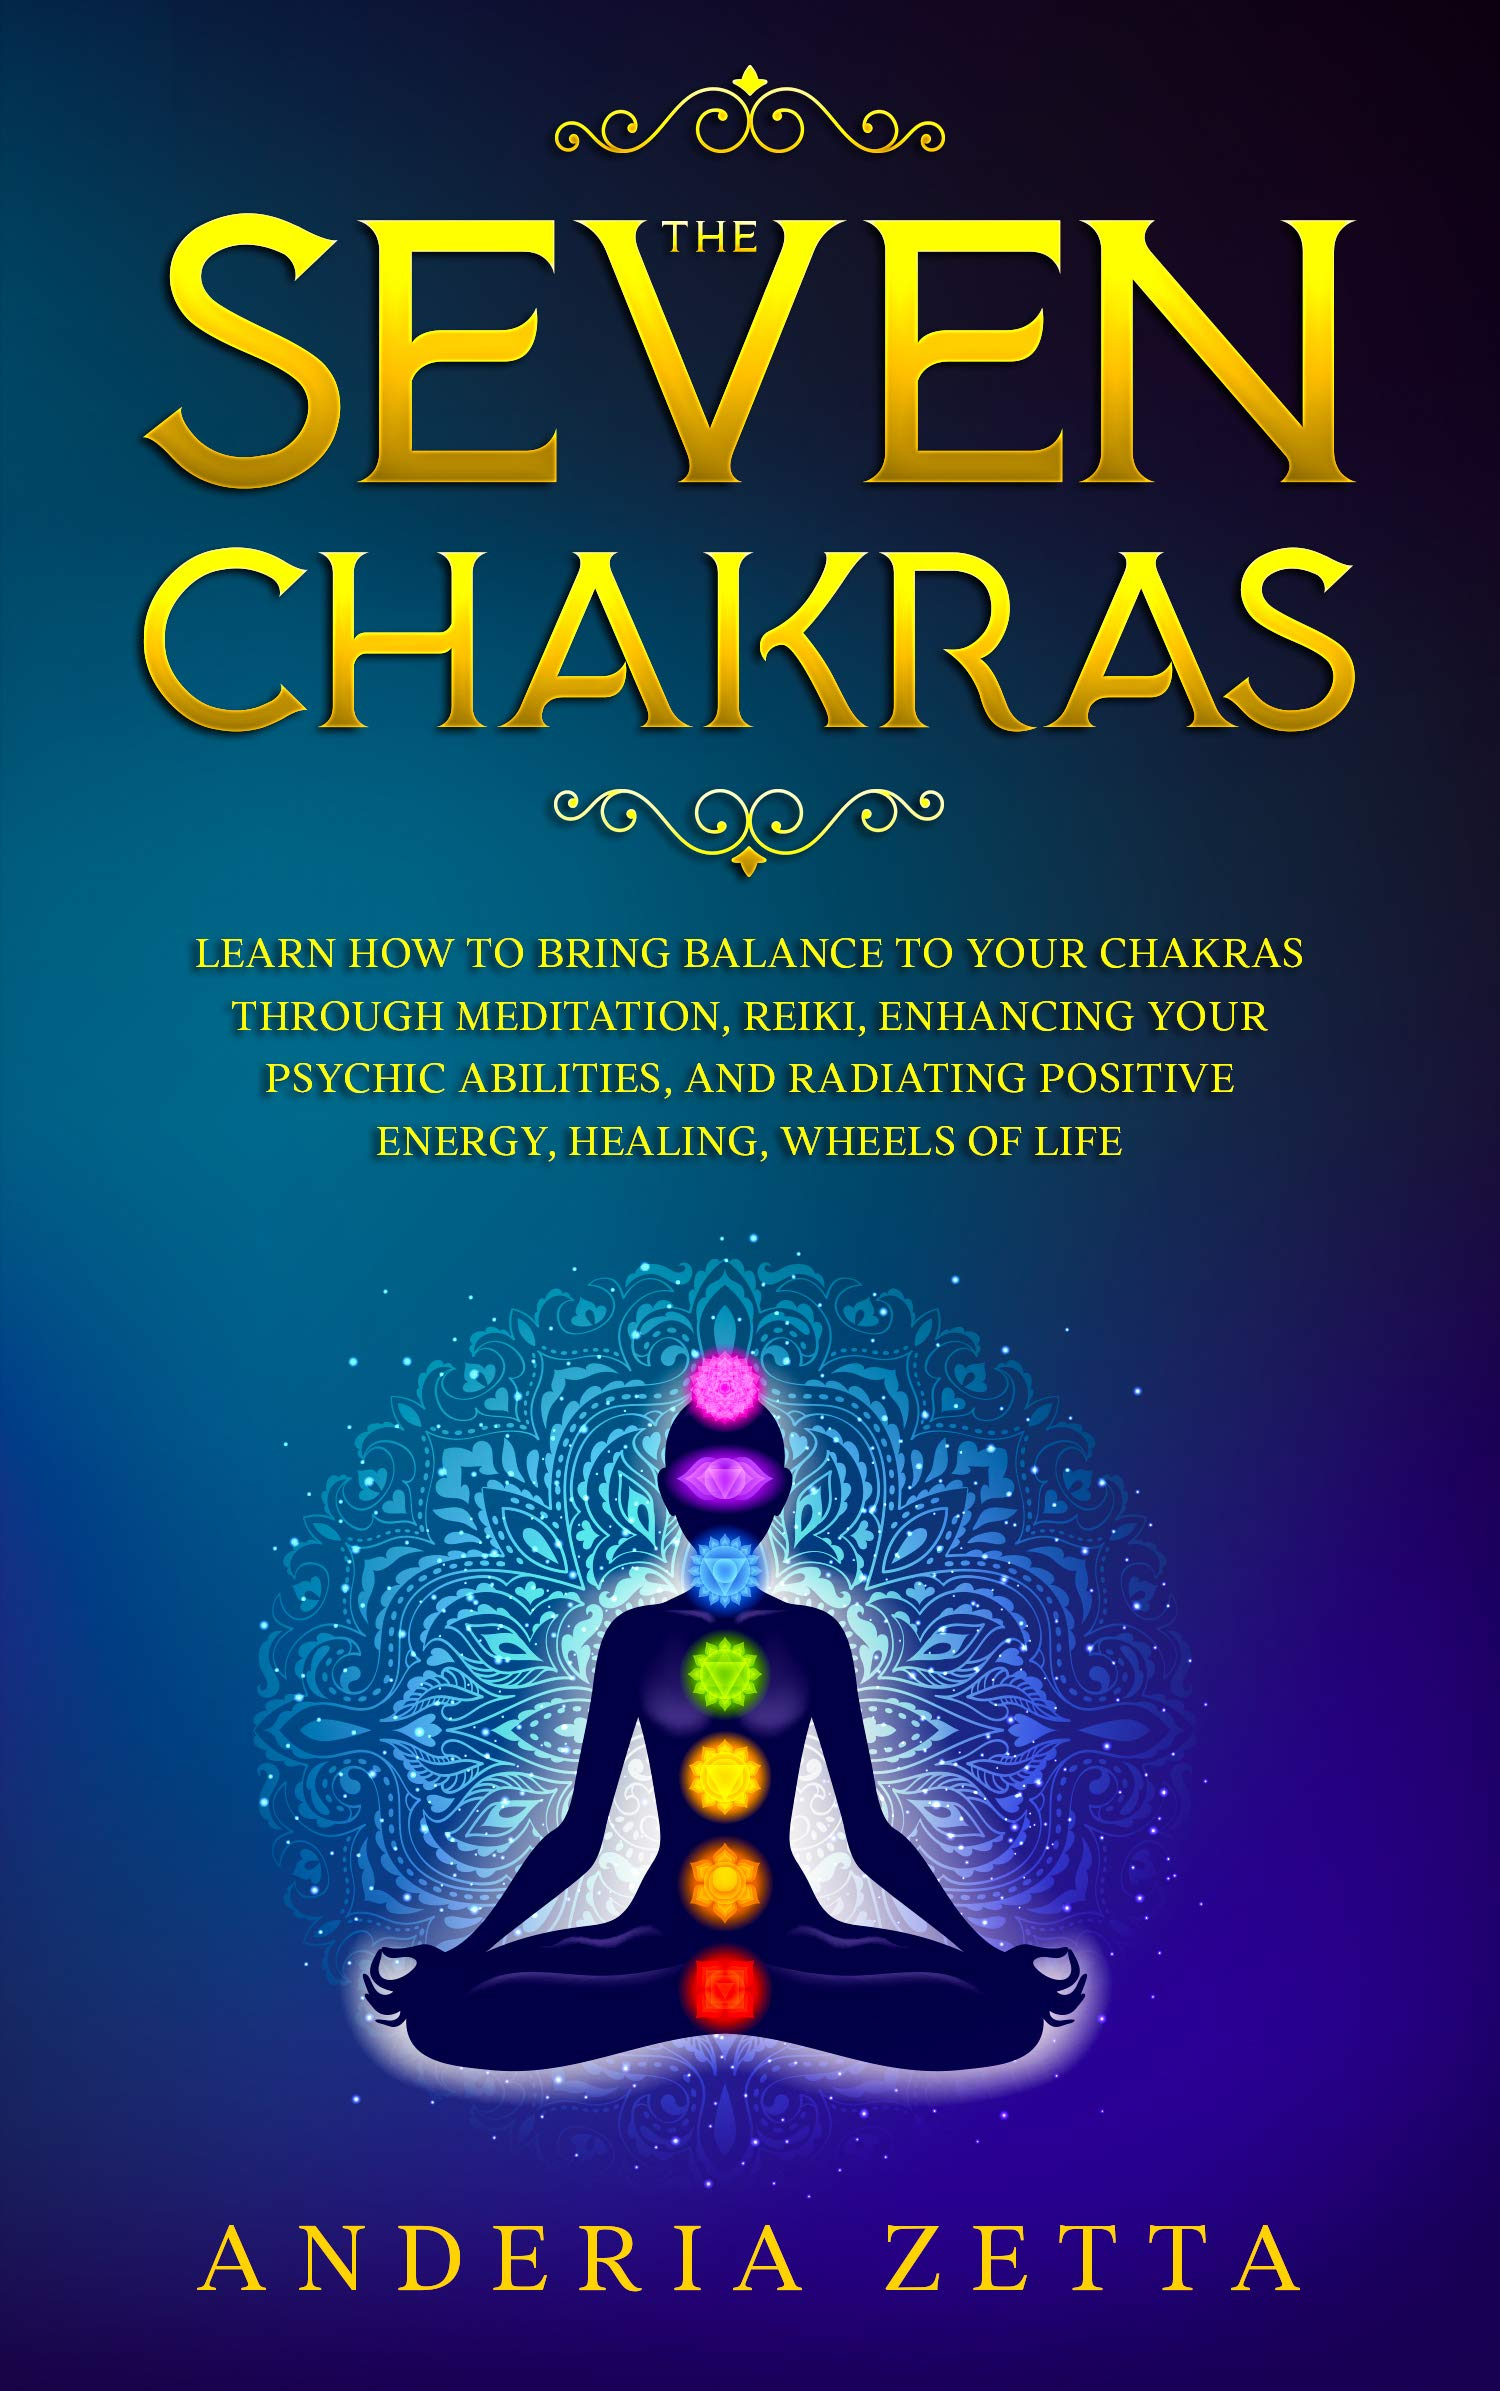 The Seven Chakras: Learn How to Bring Balance to Your Chakras Through Meditation, Reiki, Enhancing Your Psychic Abilities, and Radiating Positive Energy, Healing, Wheels of Lif